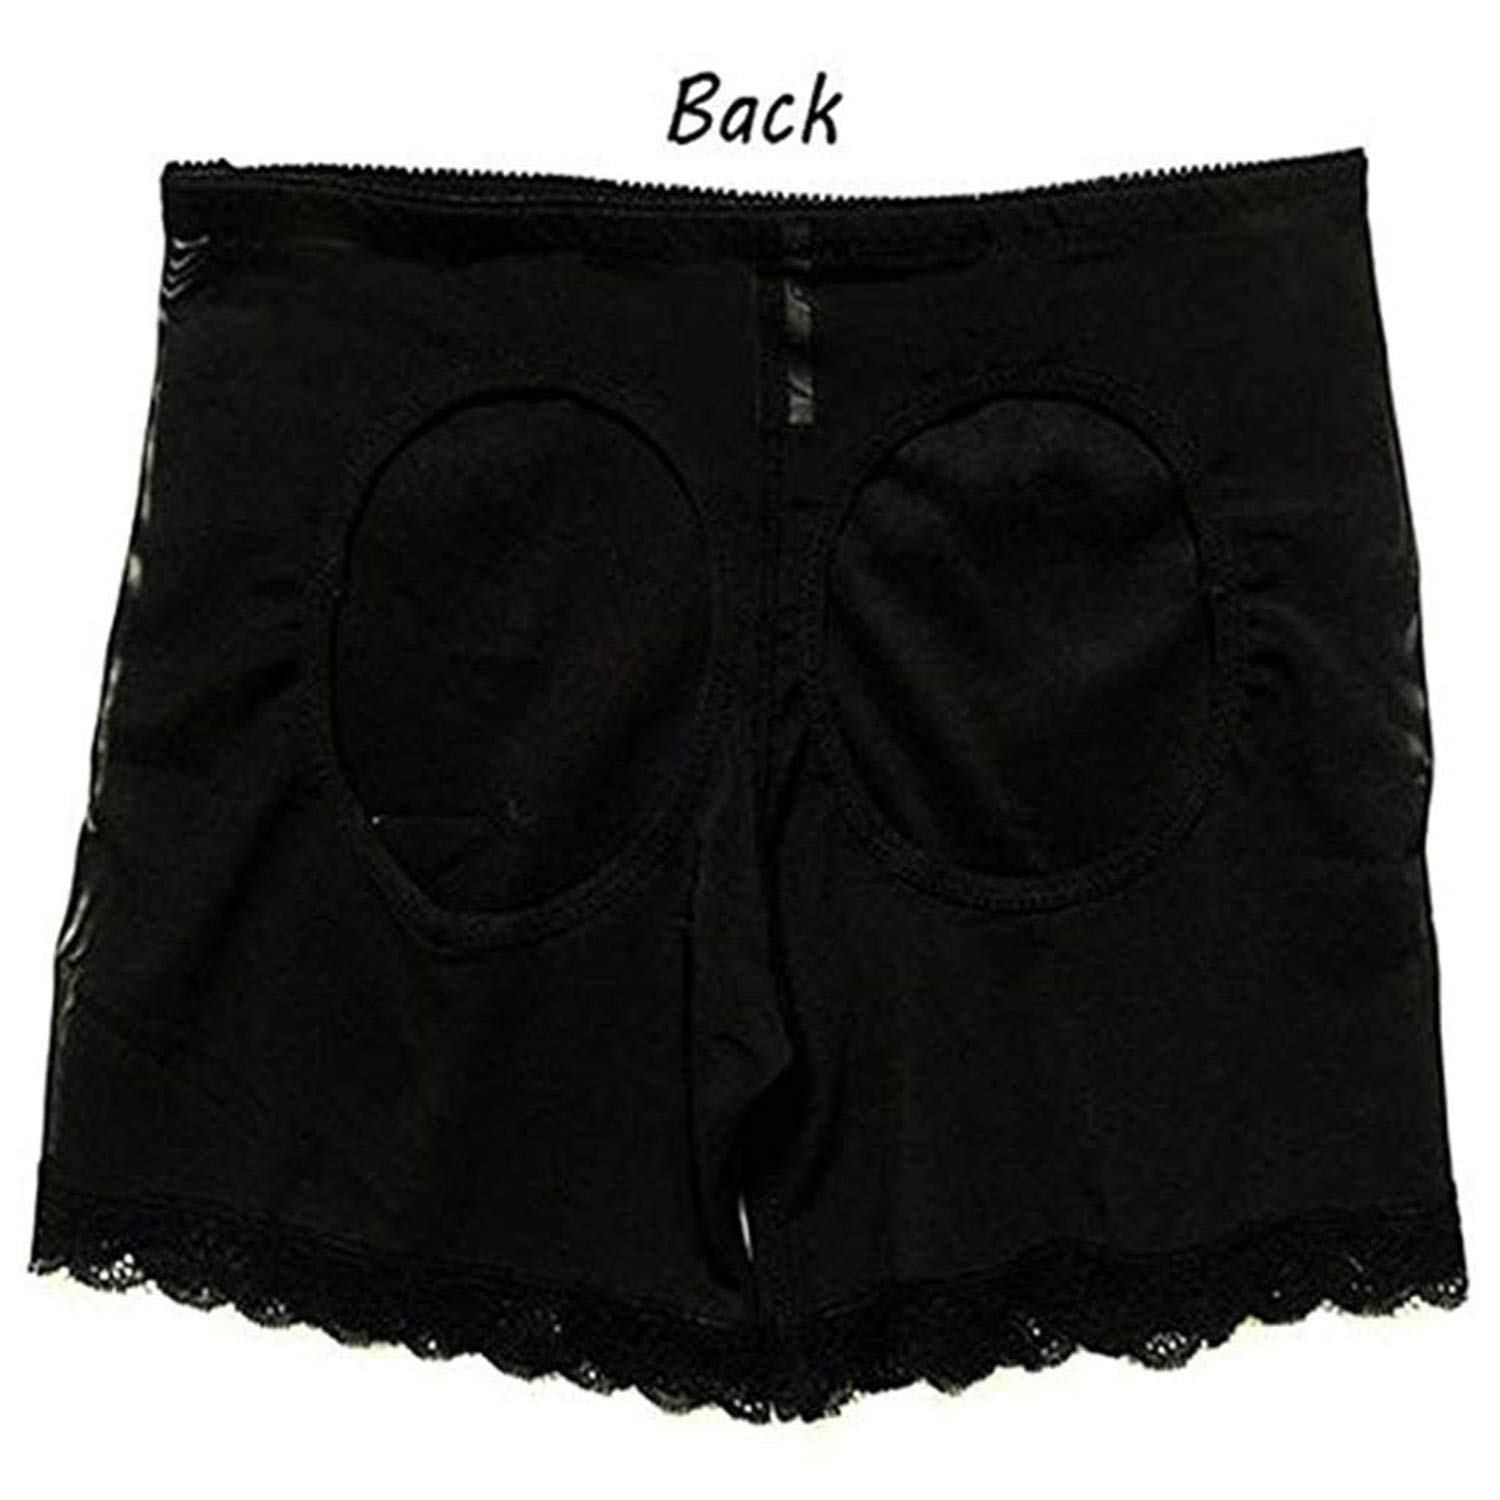 Women Briefs Solid Color Stitching Control Butt Underpants Shorts Shaping Briefs by Kairood